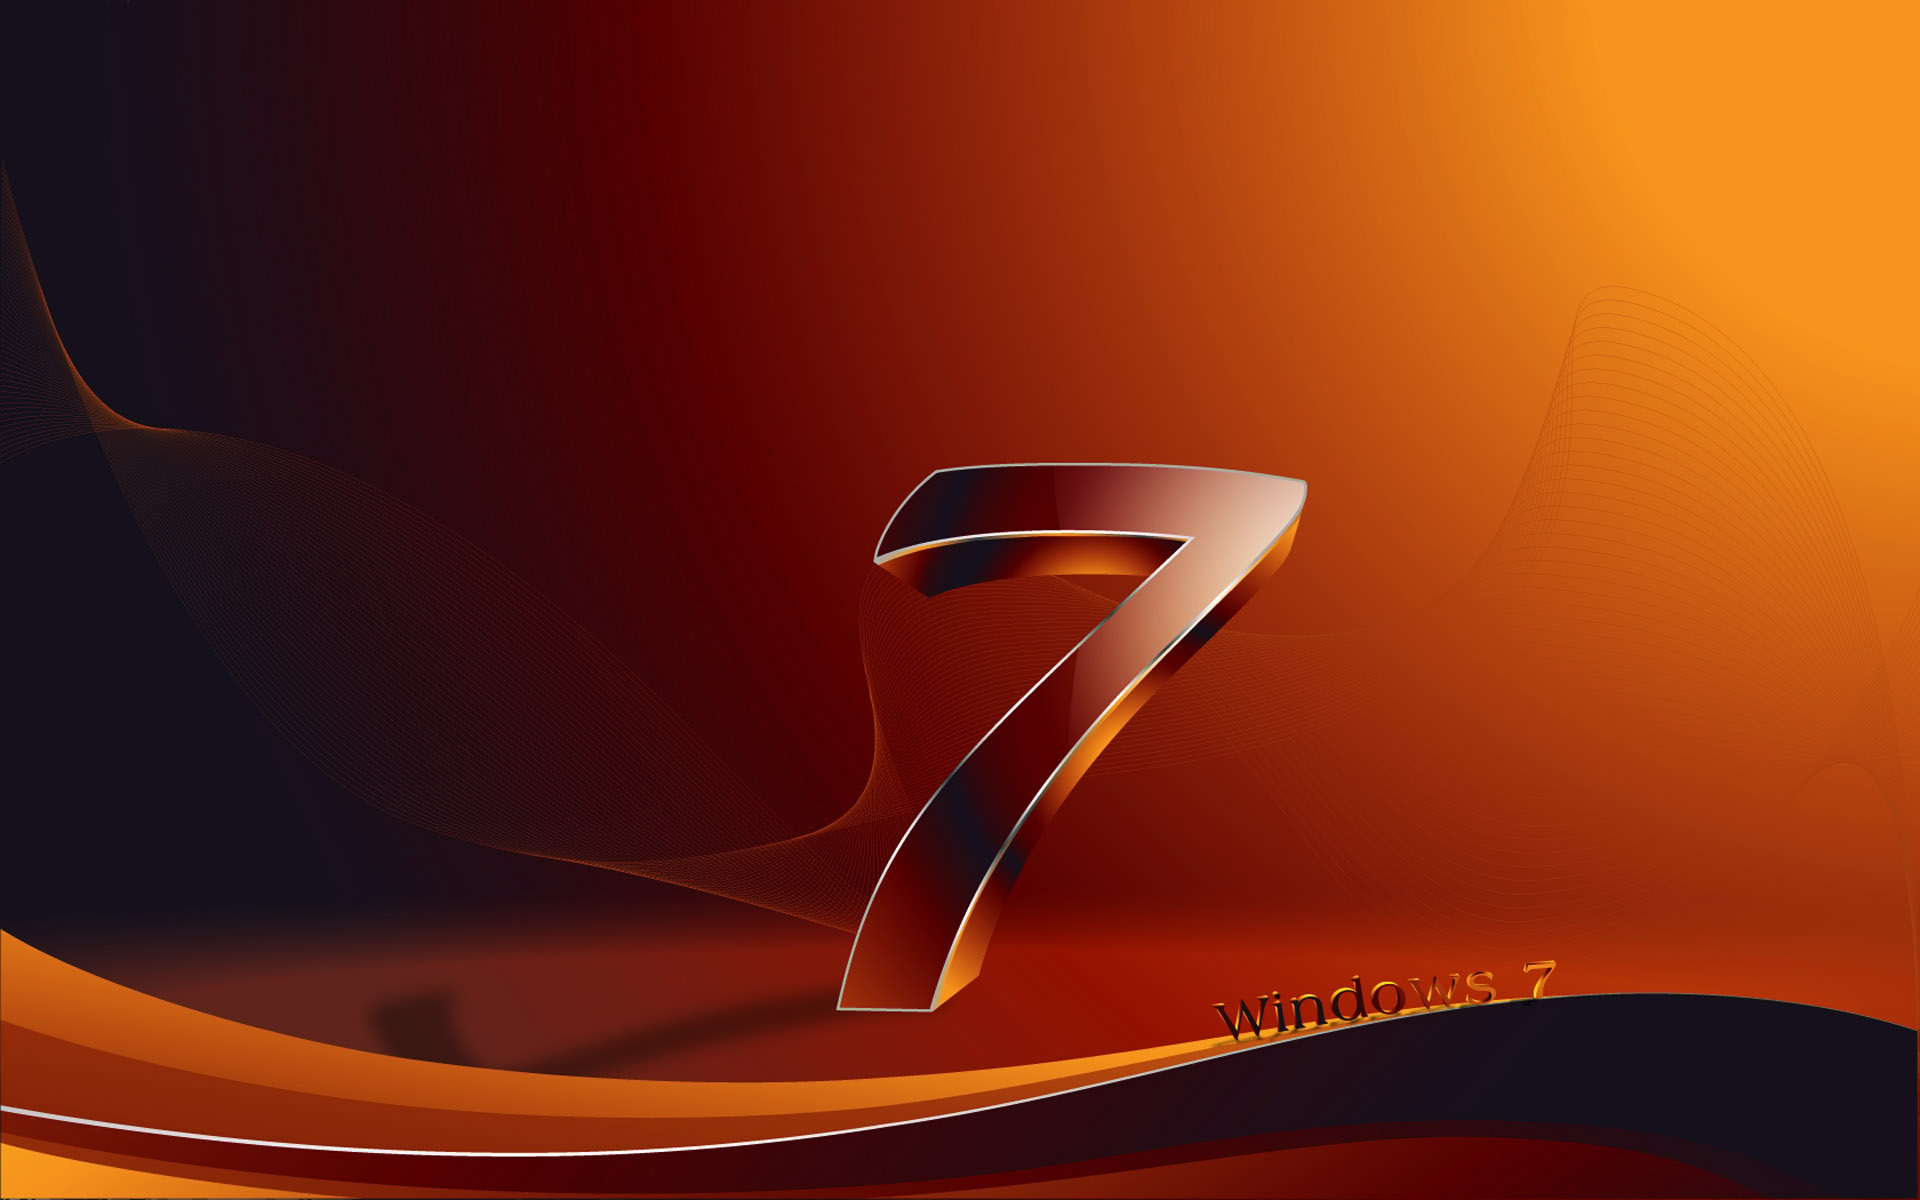 3D Wallpaper Pc Windows 7